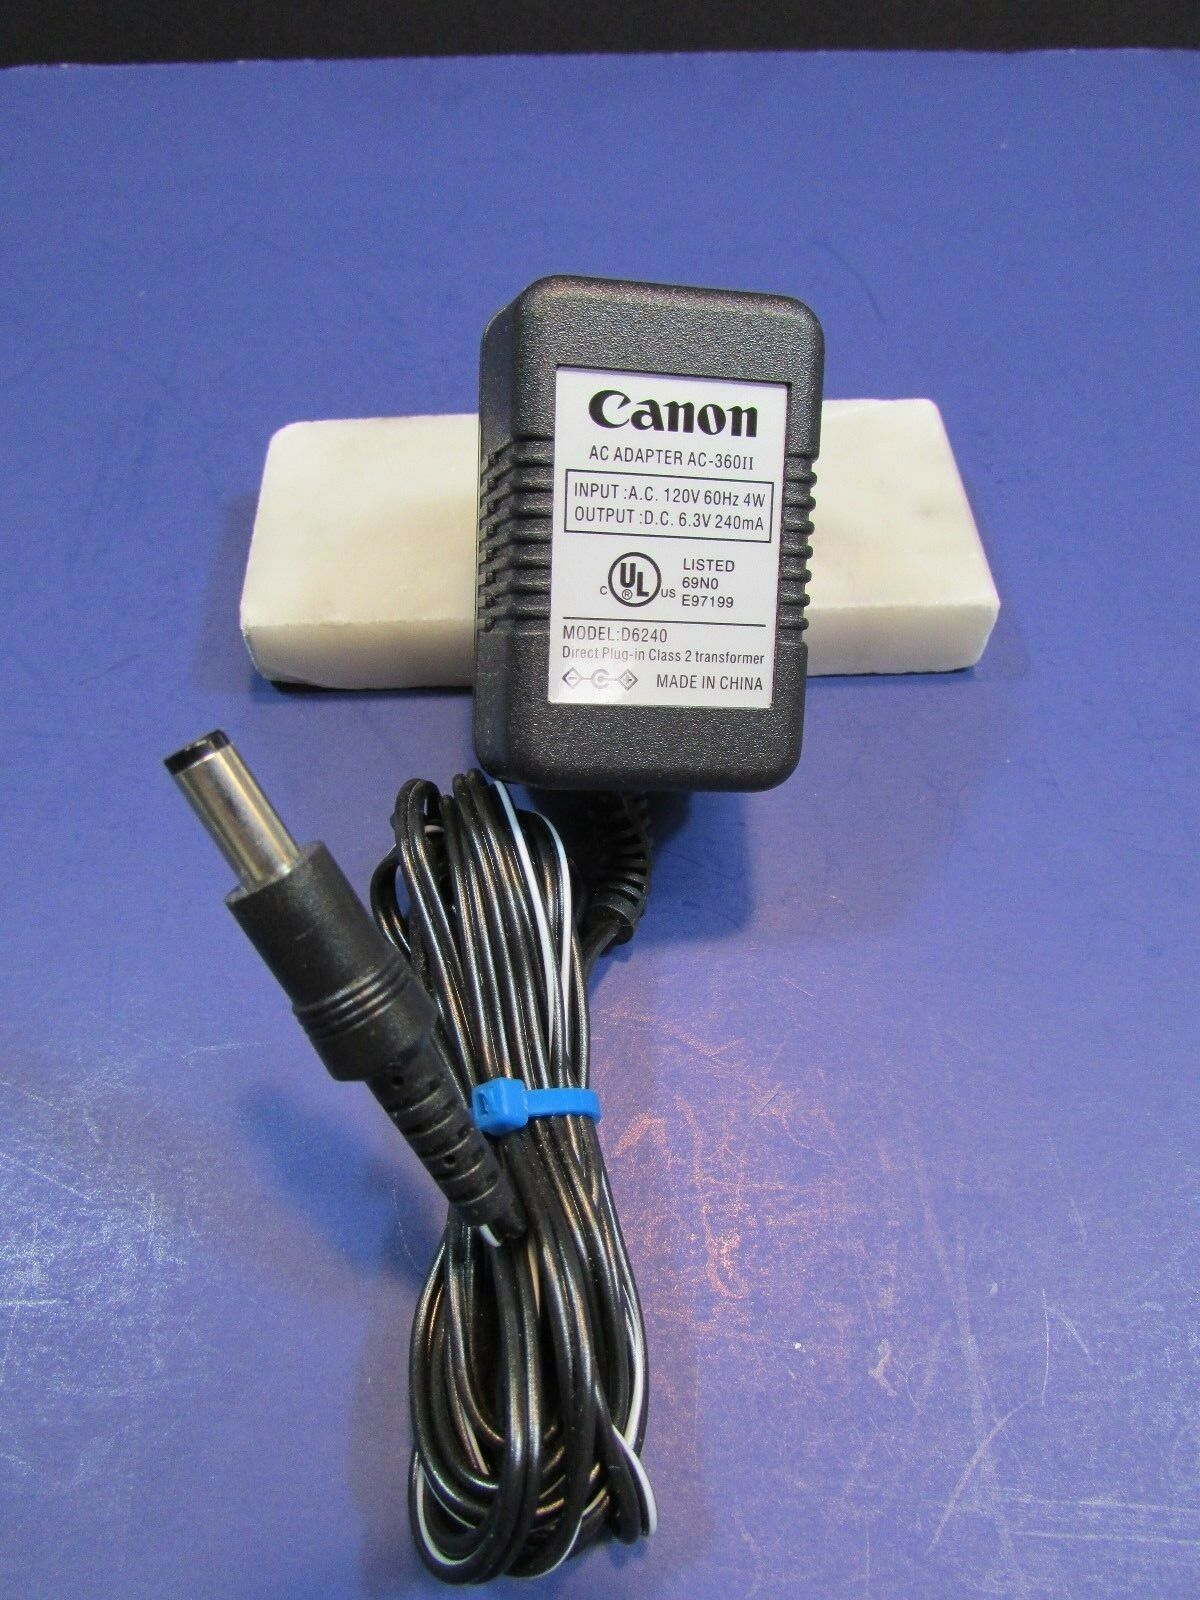 Canon D6240 AC-36011 AC Adapter Power Supply Cord Cable Genuine Original